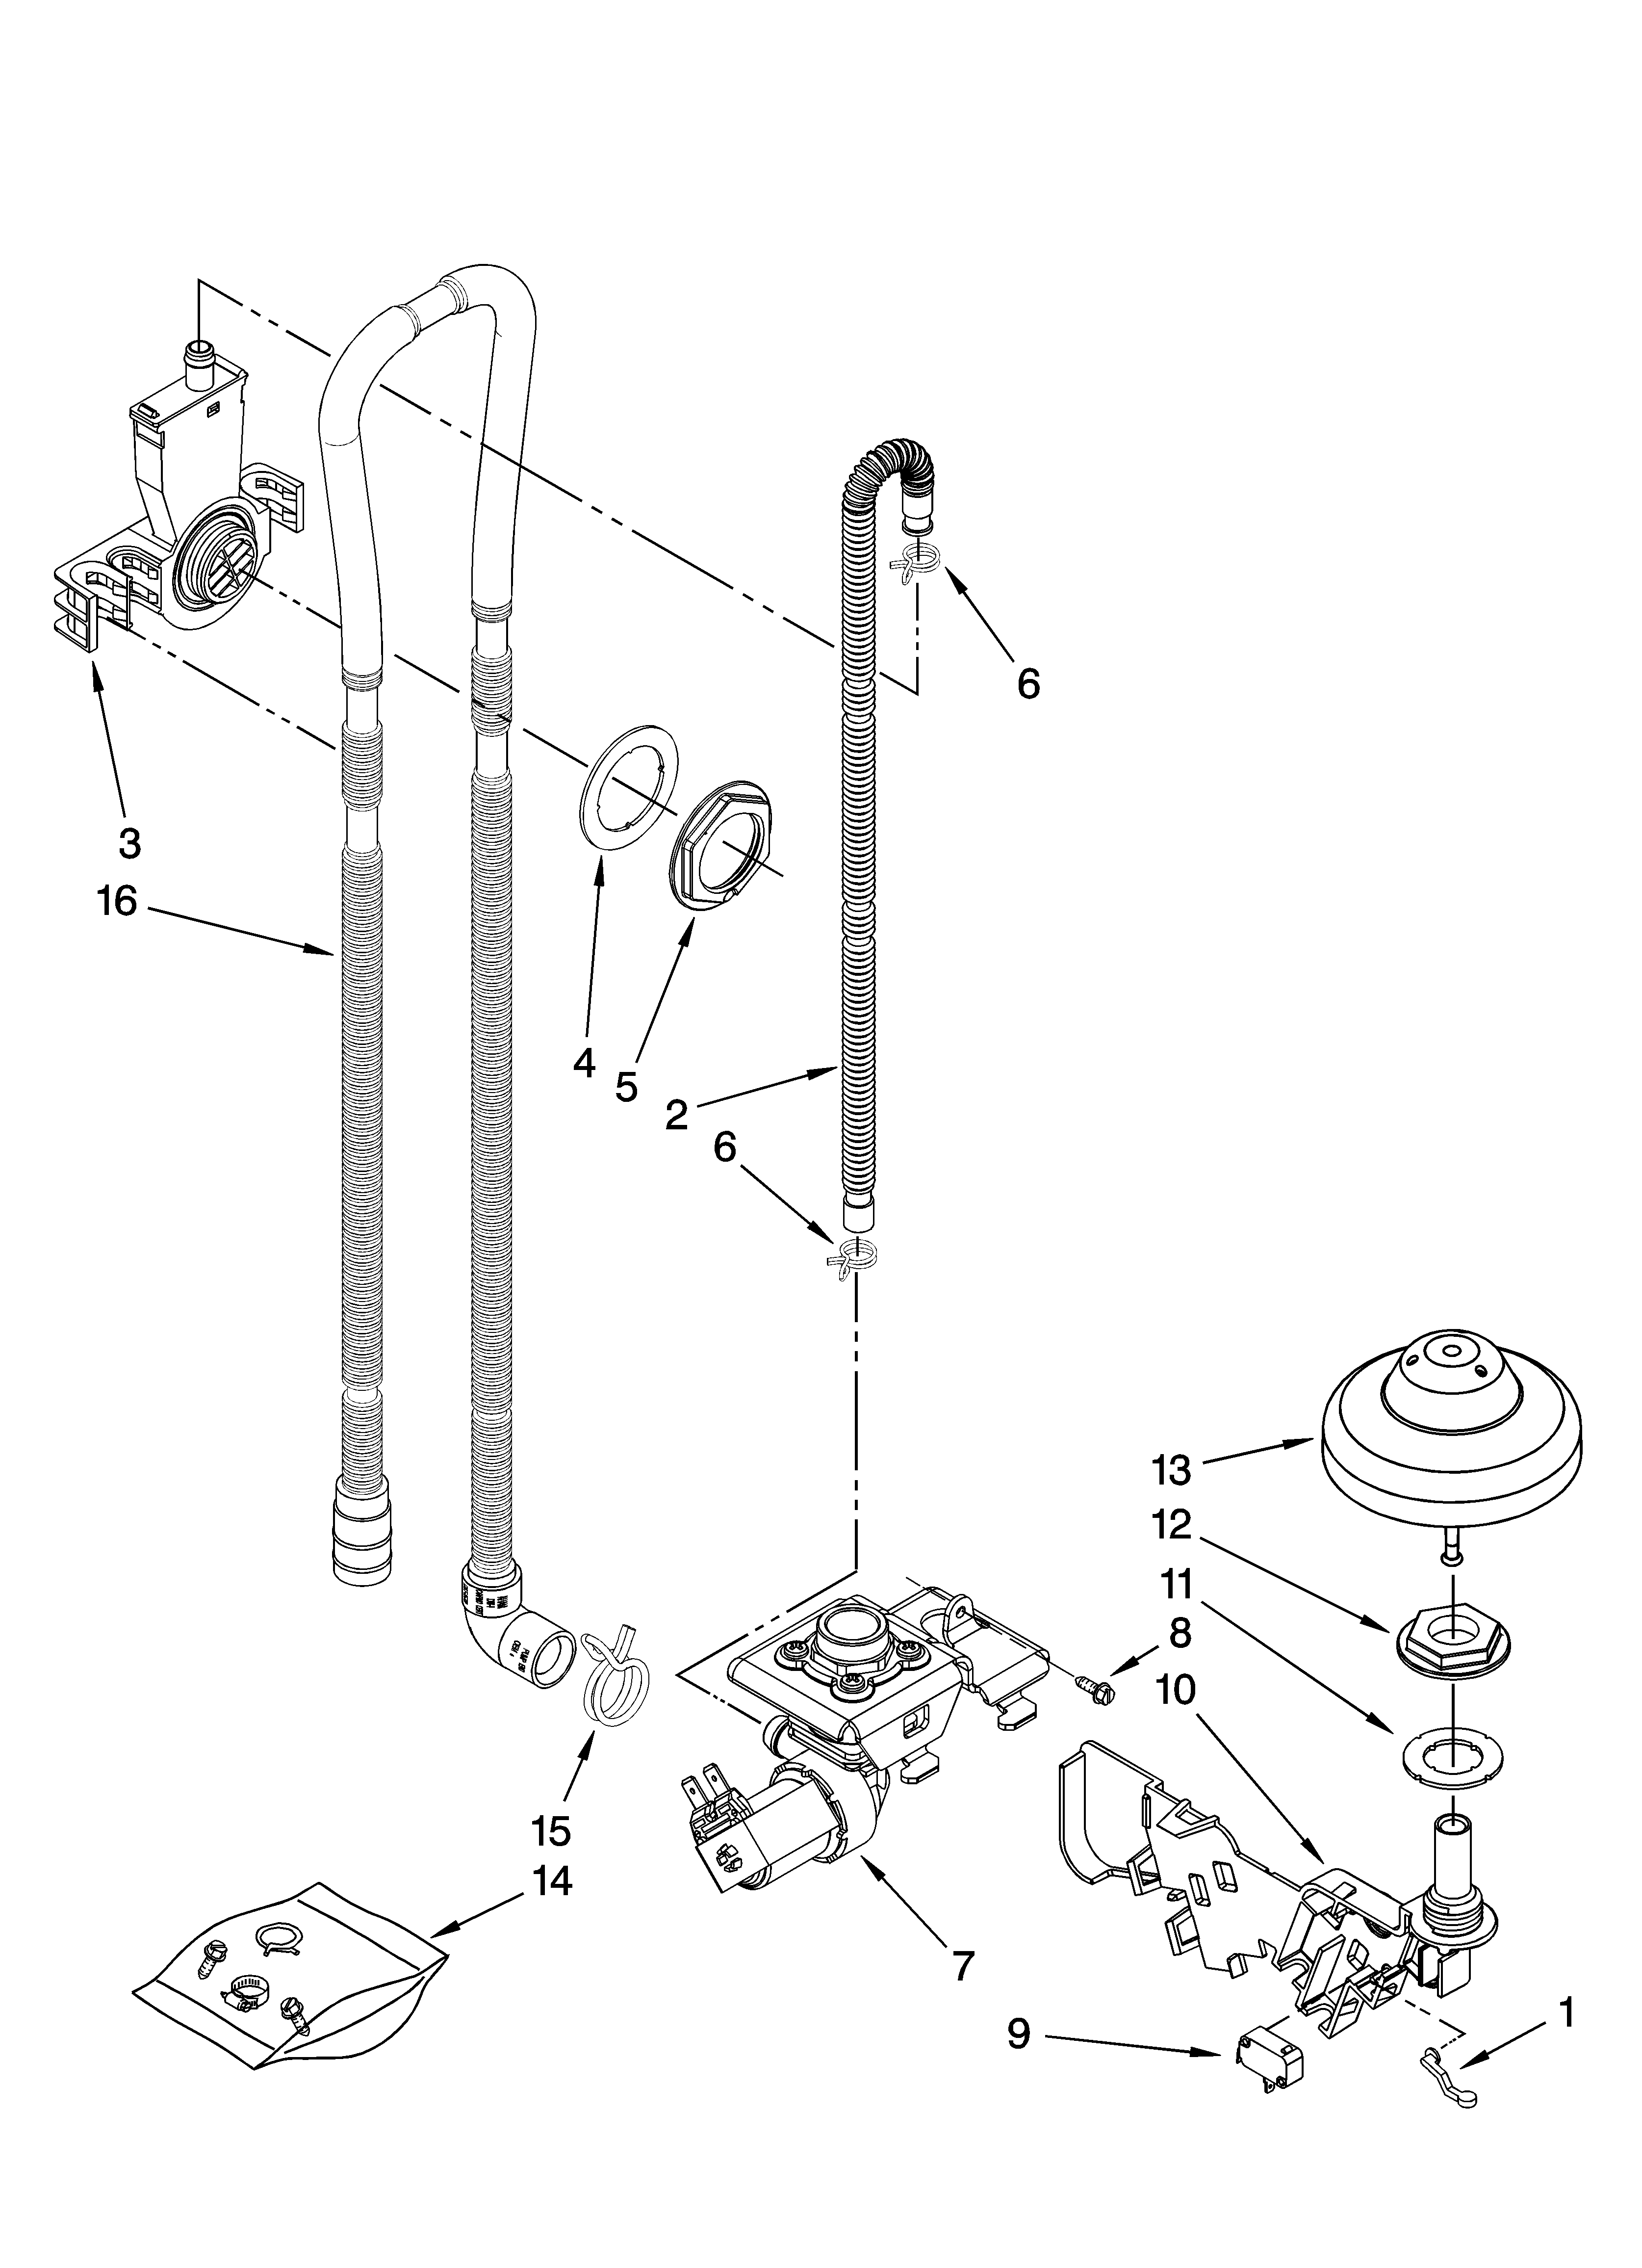 Kenmore Elite 66513129K701 fill, drain and overfill parts diagram